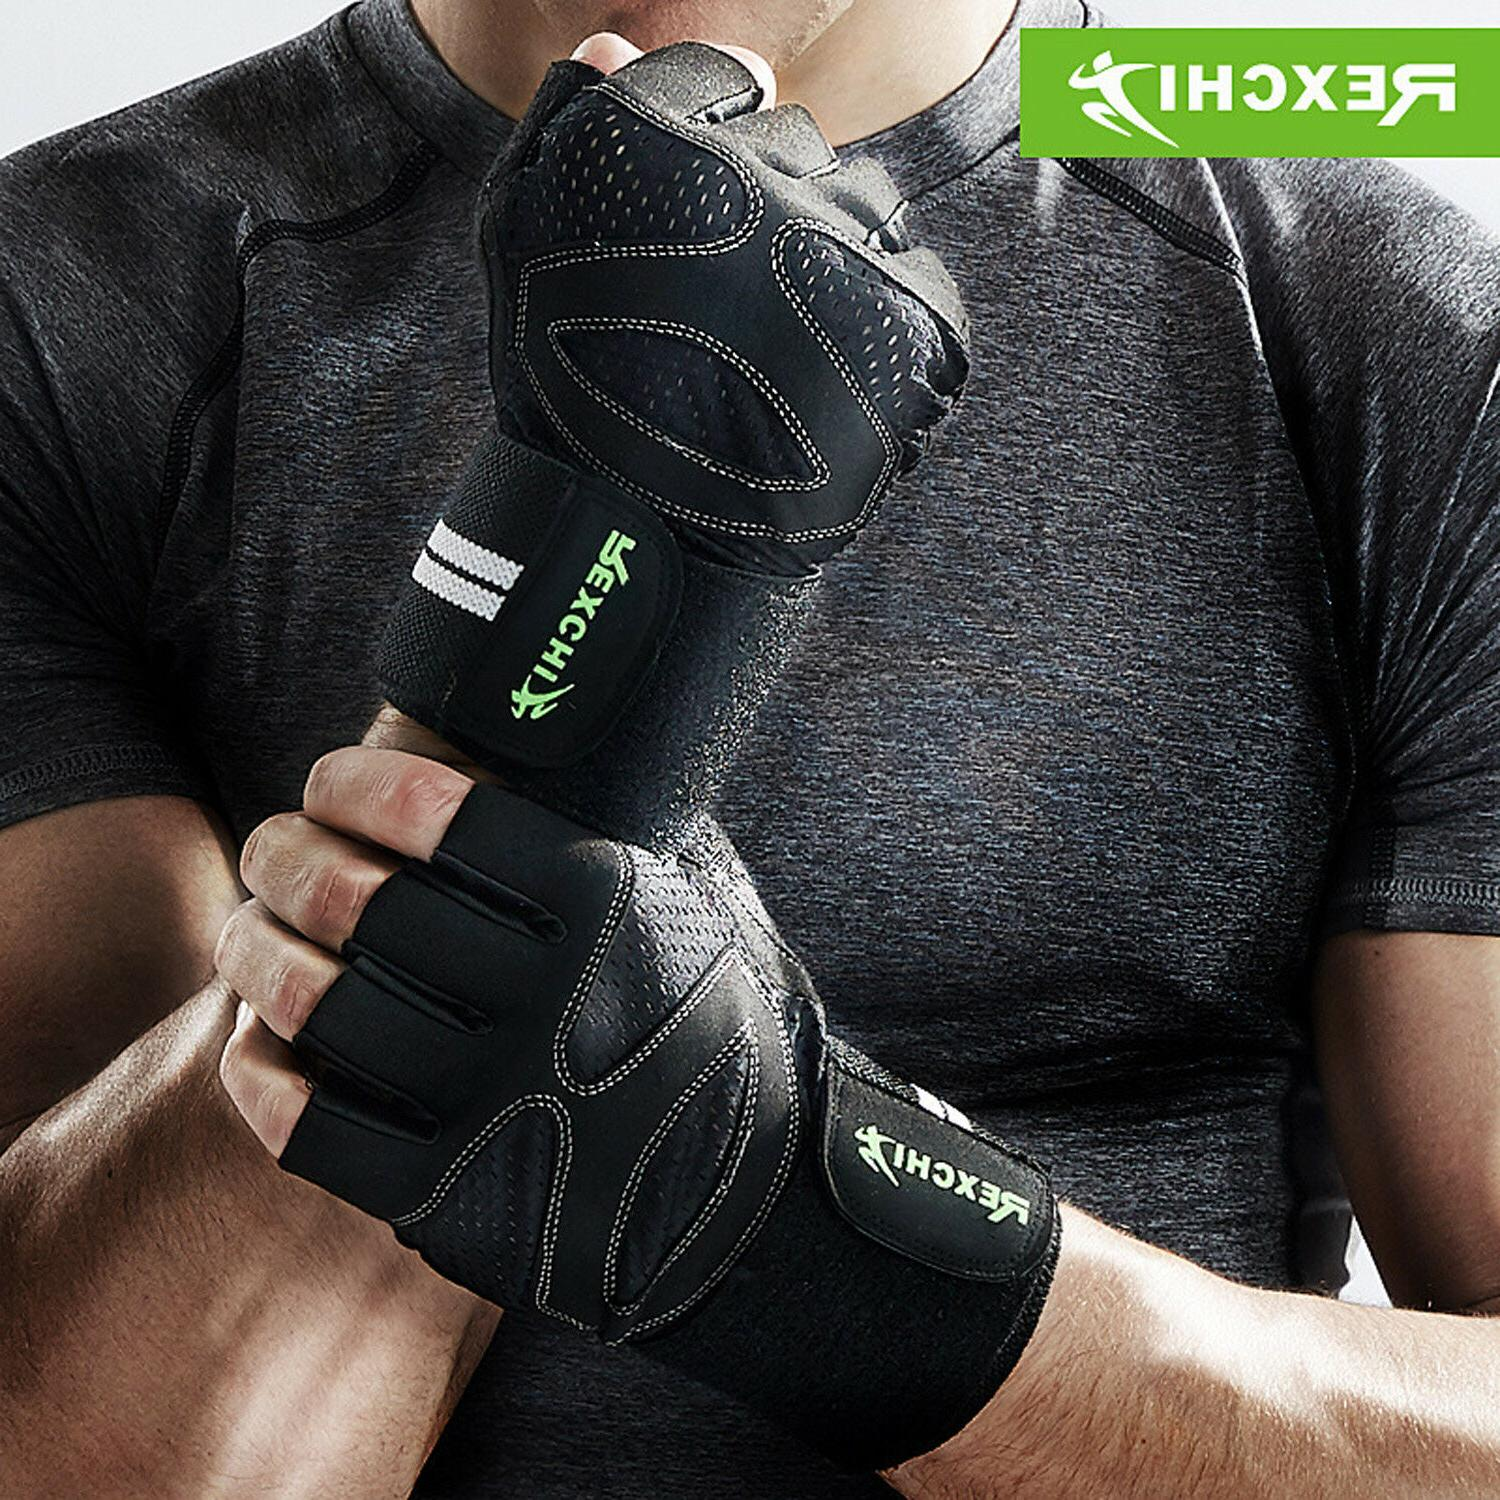 wrist wrap support gym gloves for weight